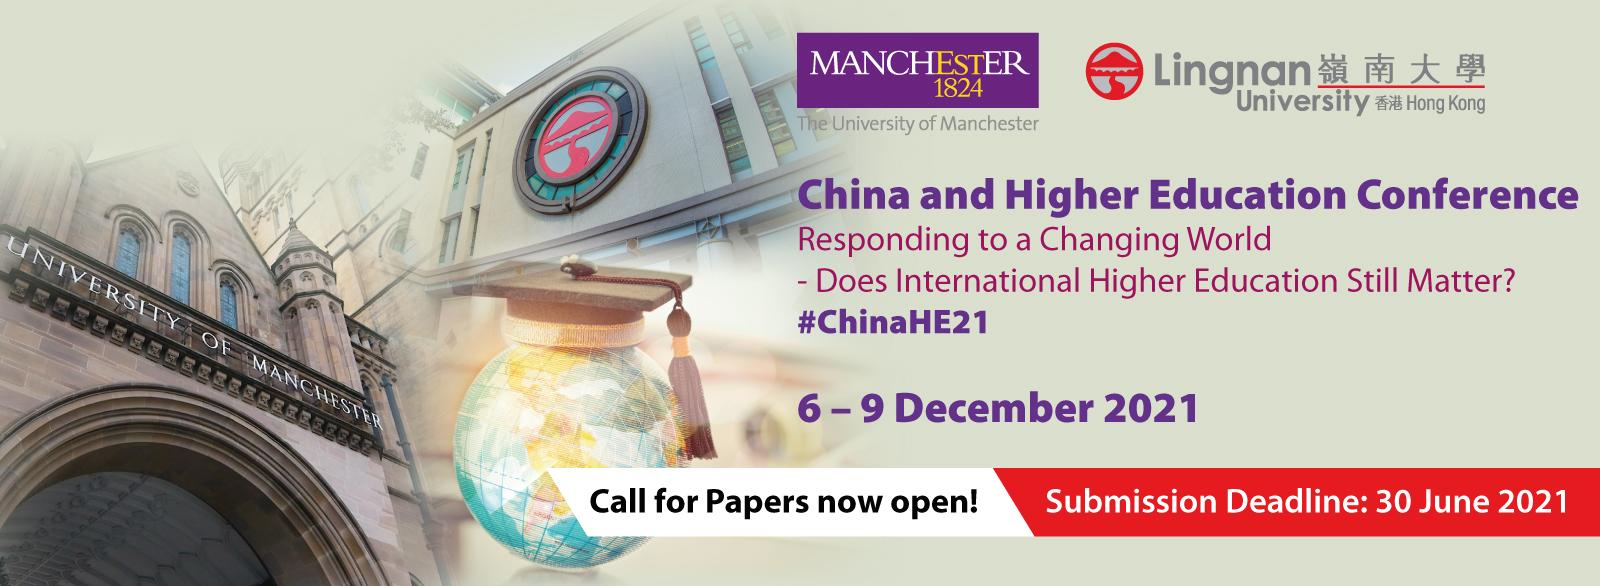 China and Higher Education Conference: Responding to a Changing World - Does International Higher Education Still Matter?